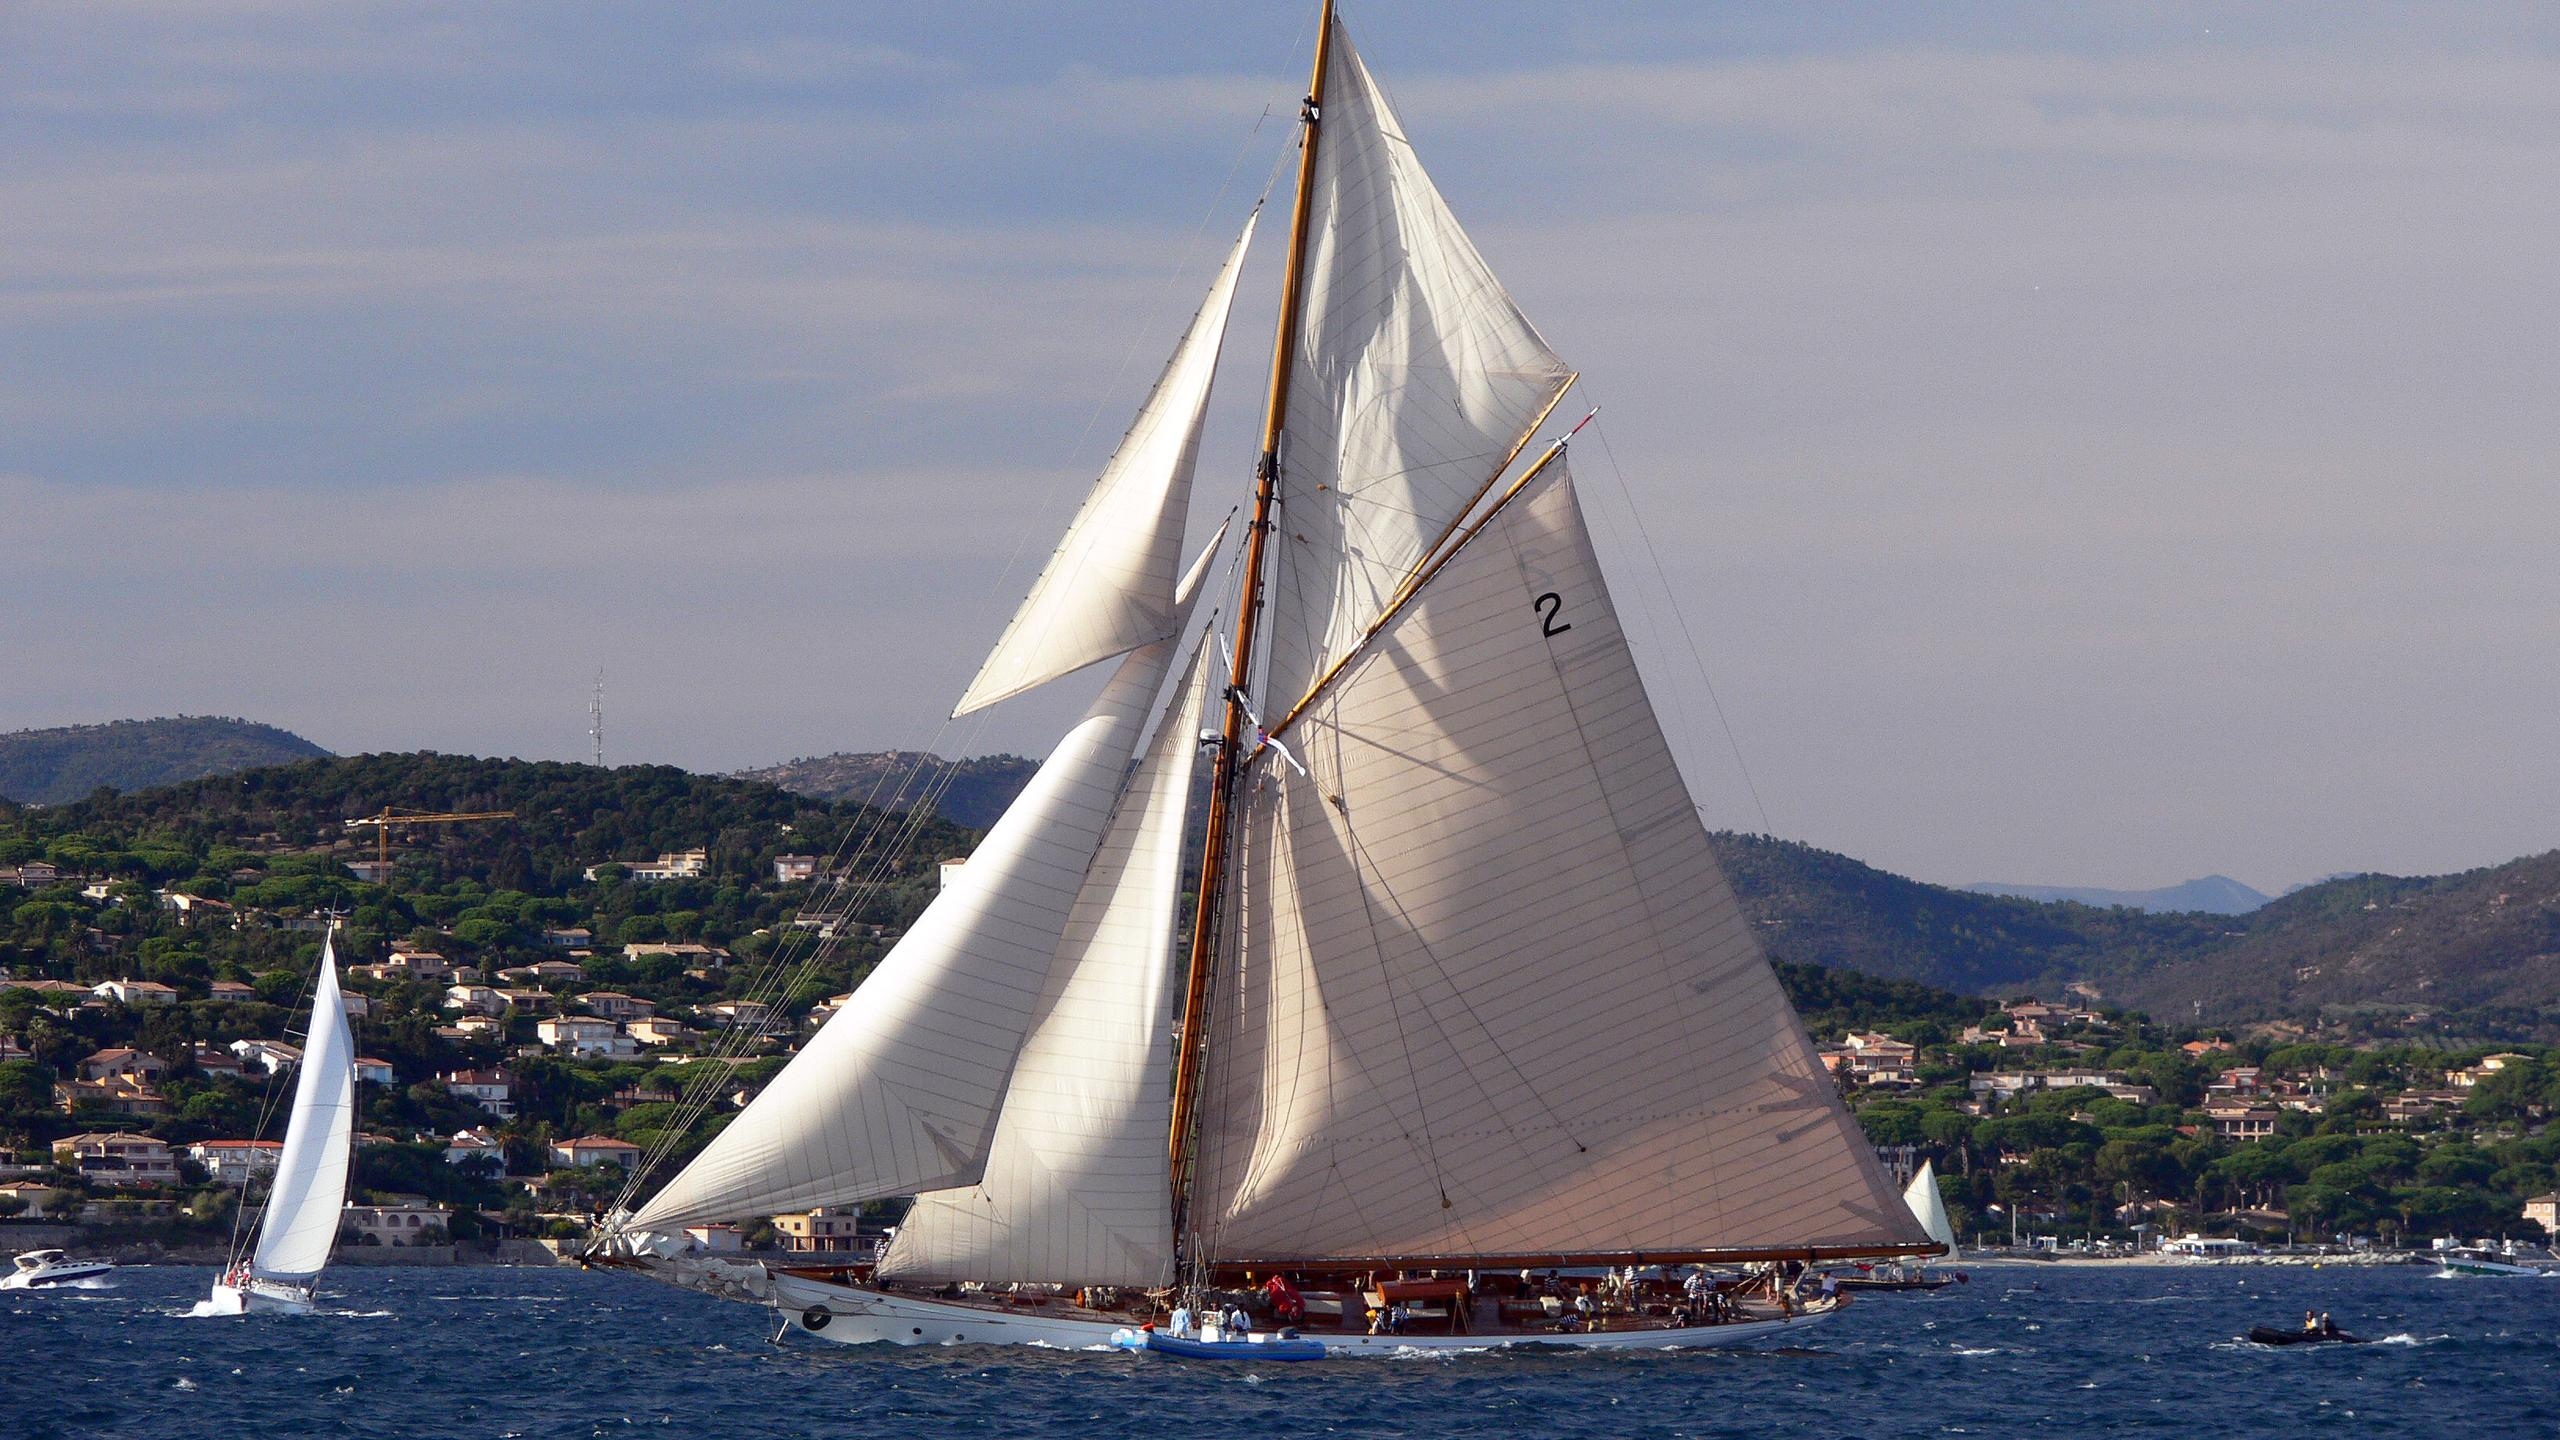 lulworth-sailing-yacht-white-hw-1920-46m-cruising-profile